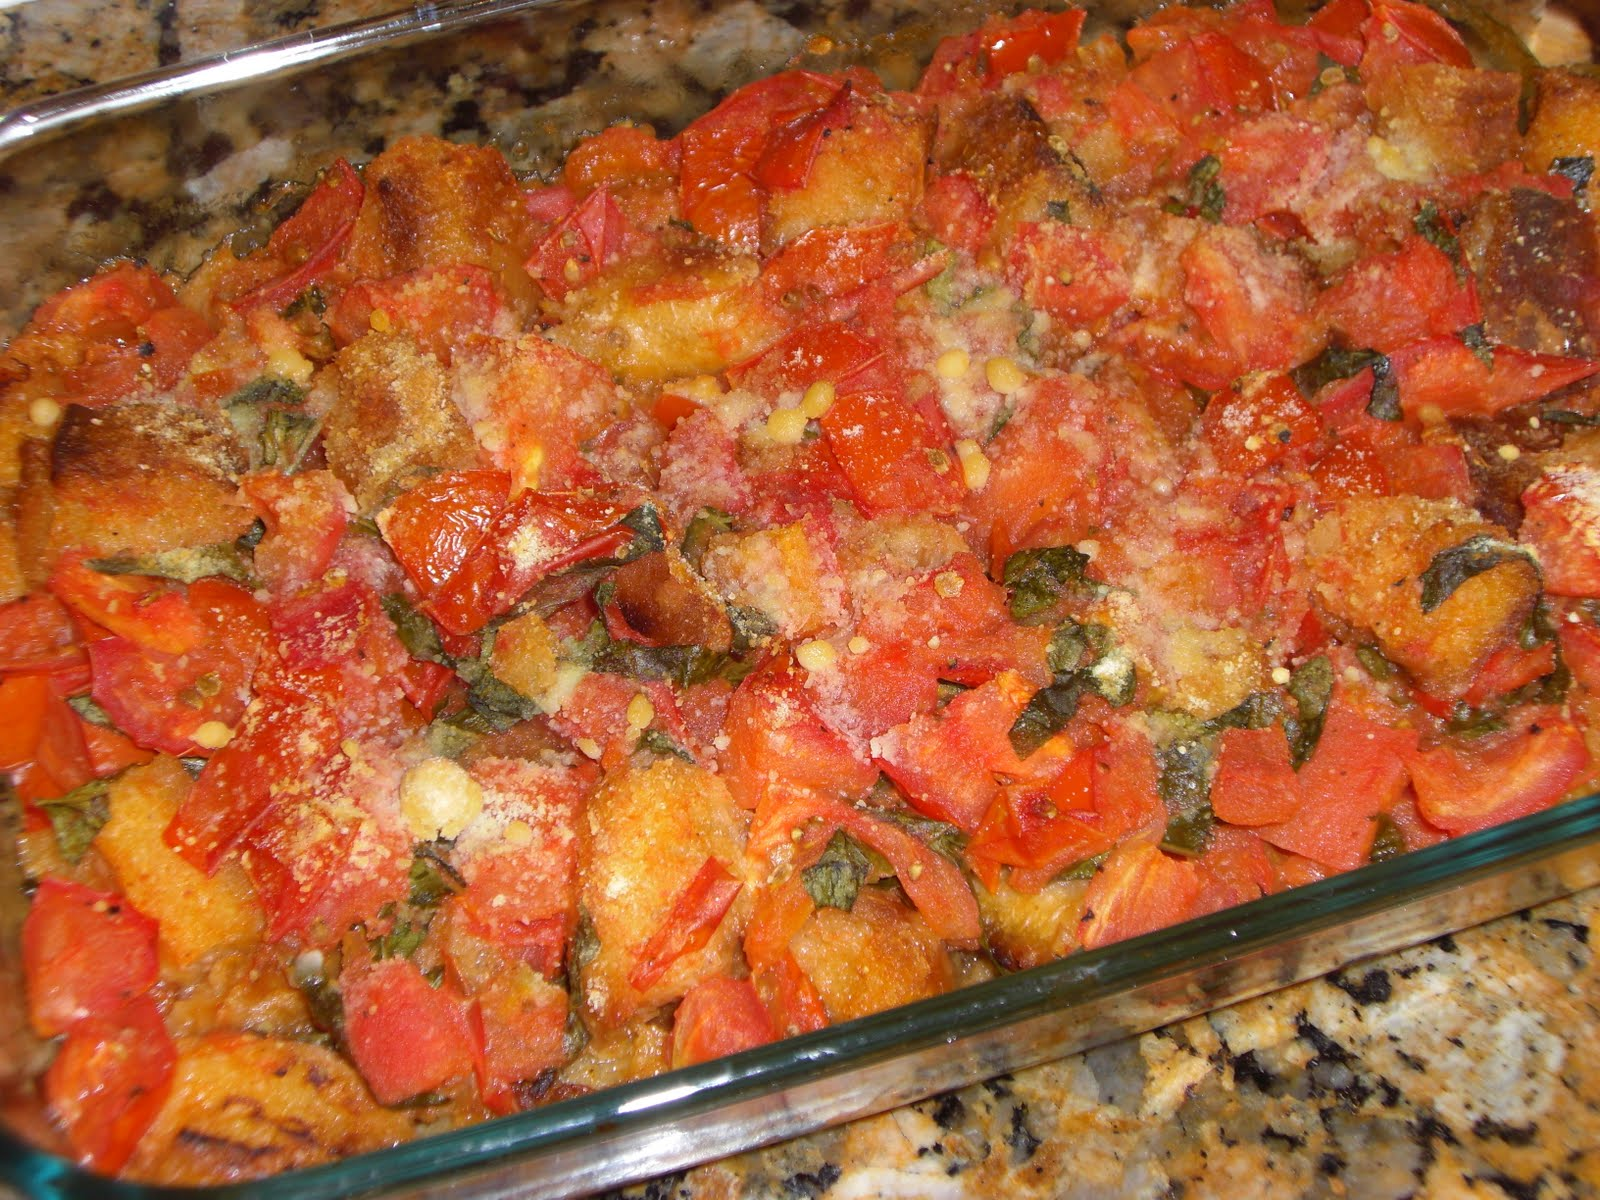 Vegan Niche: MoFo 7: Basil Scalloped Tomatoes and Croutons